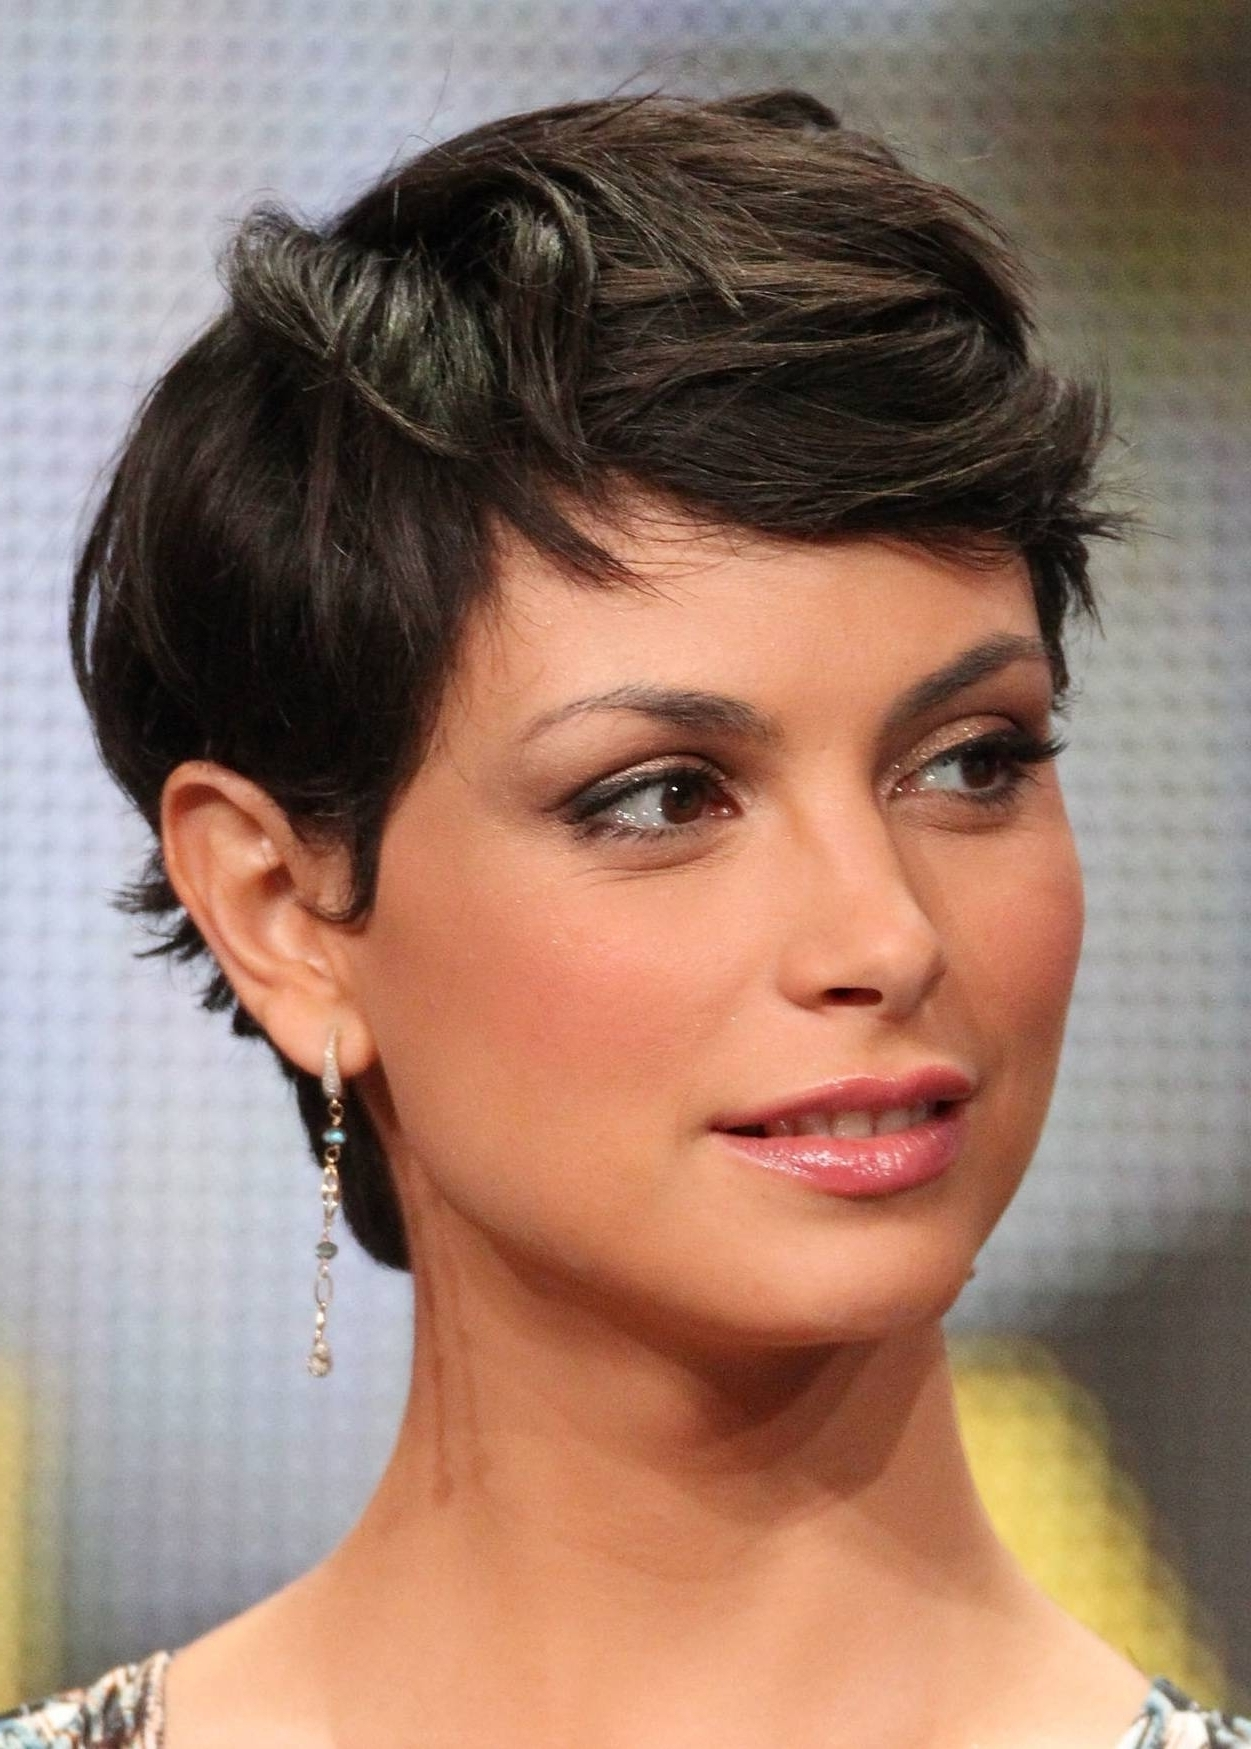 Pixie Styles Women Short Pixie Haircuts For Women With Curly Hair With Regard To Most Recently Pixie Hairstyles With Curly Hair (View 31 of 33)